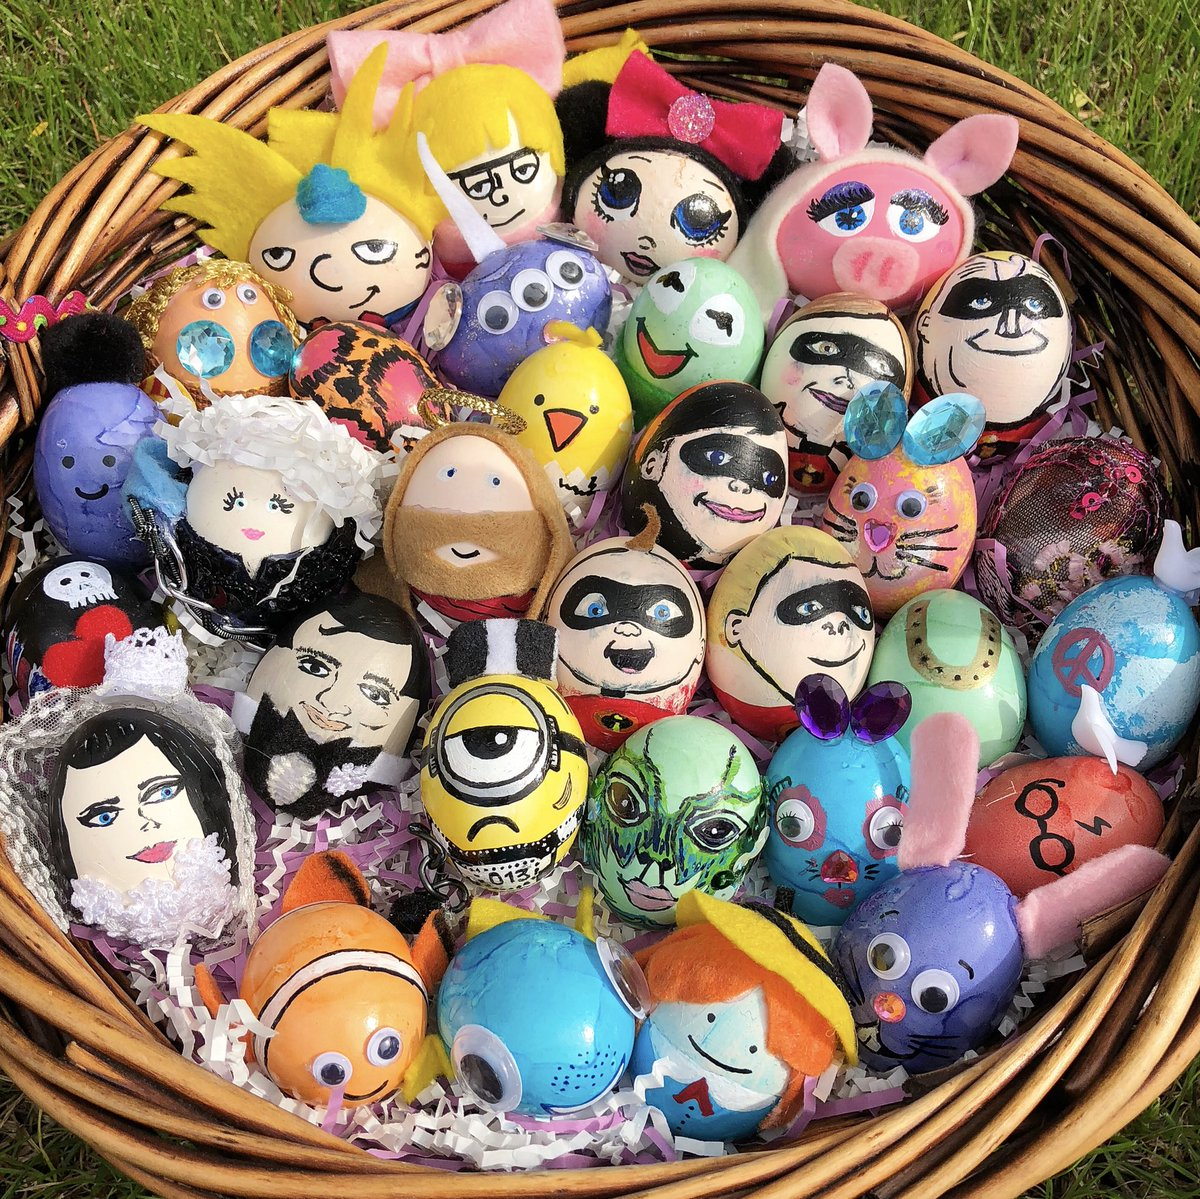 Happy Easter!!! Here are my annual Easter eggs! Can you guys guess the characters? 🌷🐇🐣